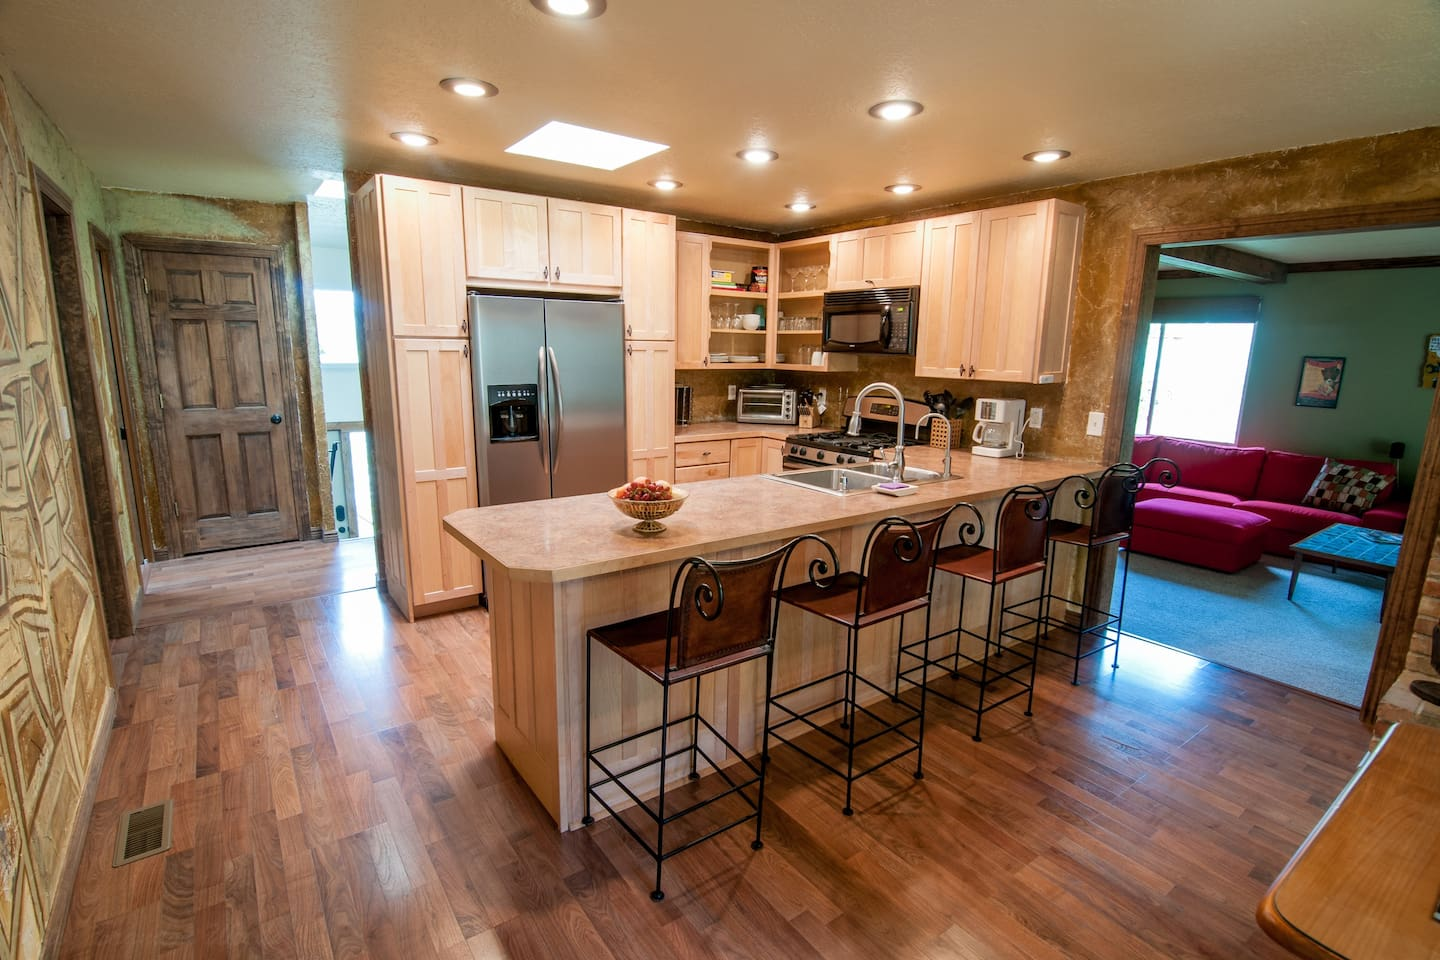 Spacious kitchen with gas stove and all updated appliances.